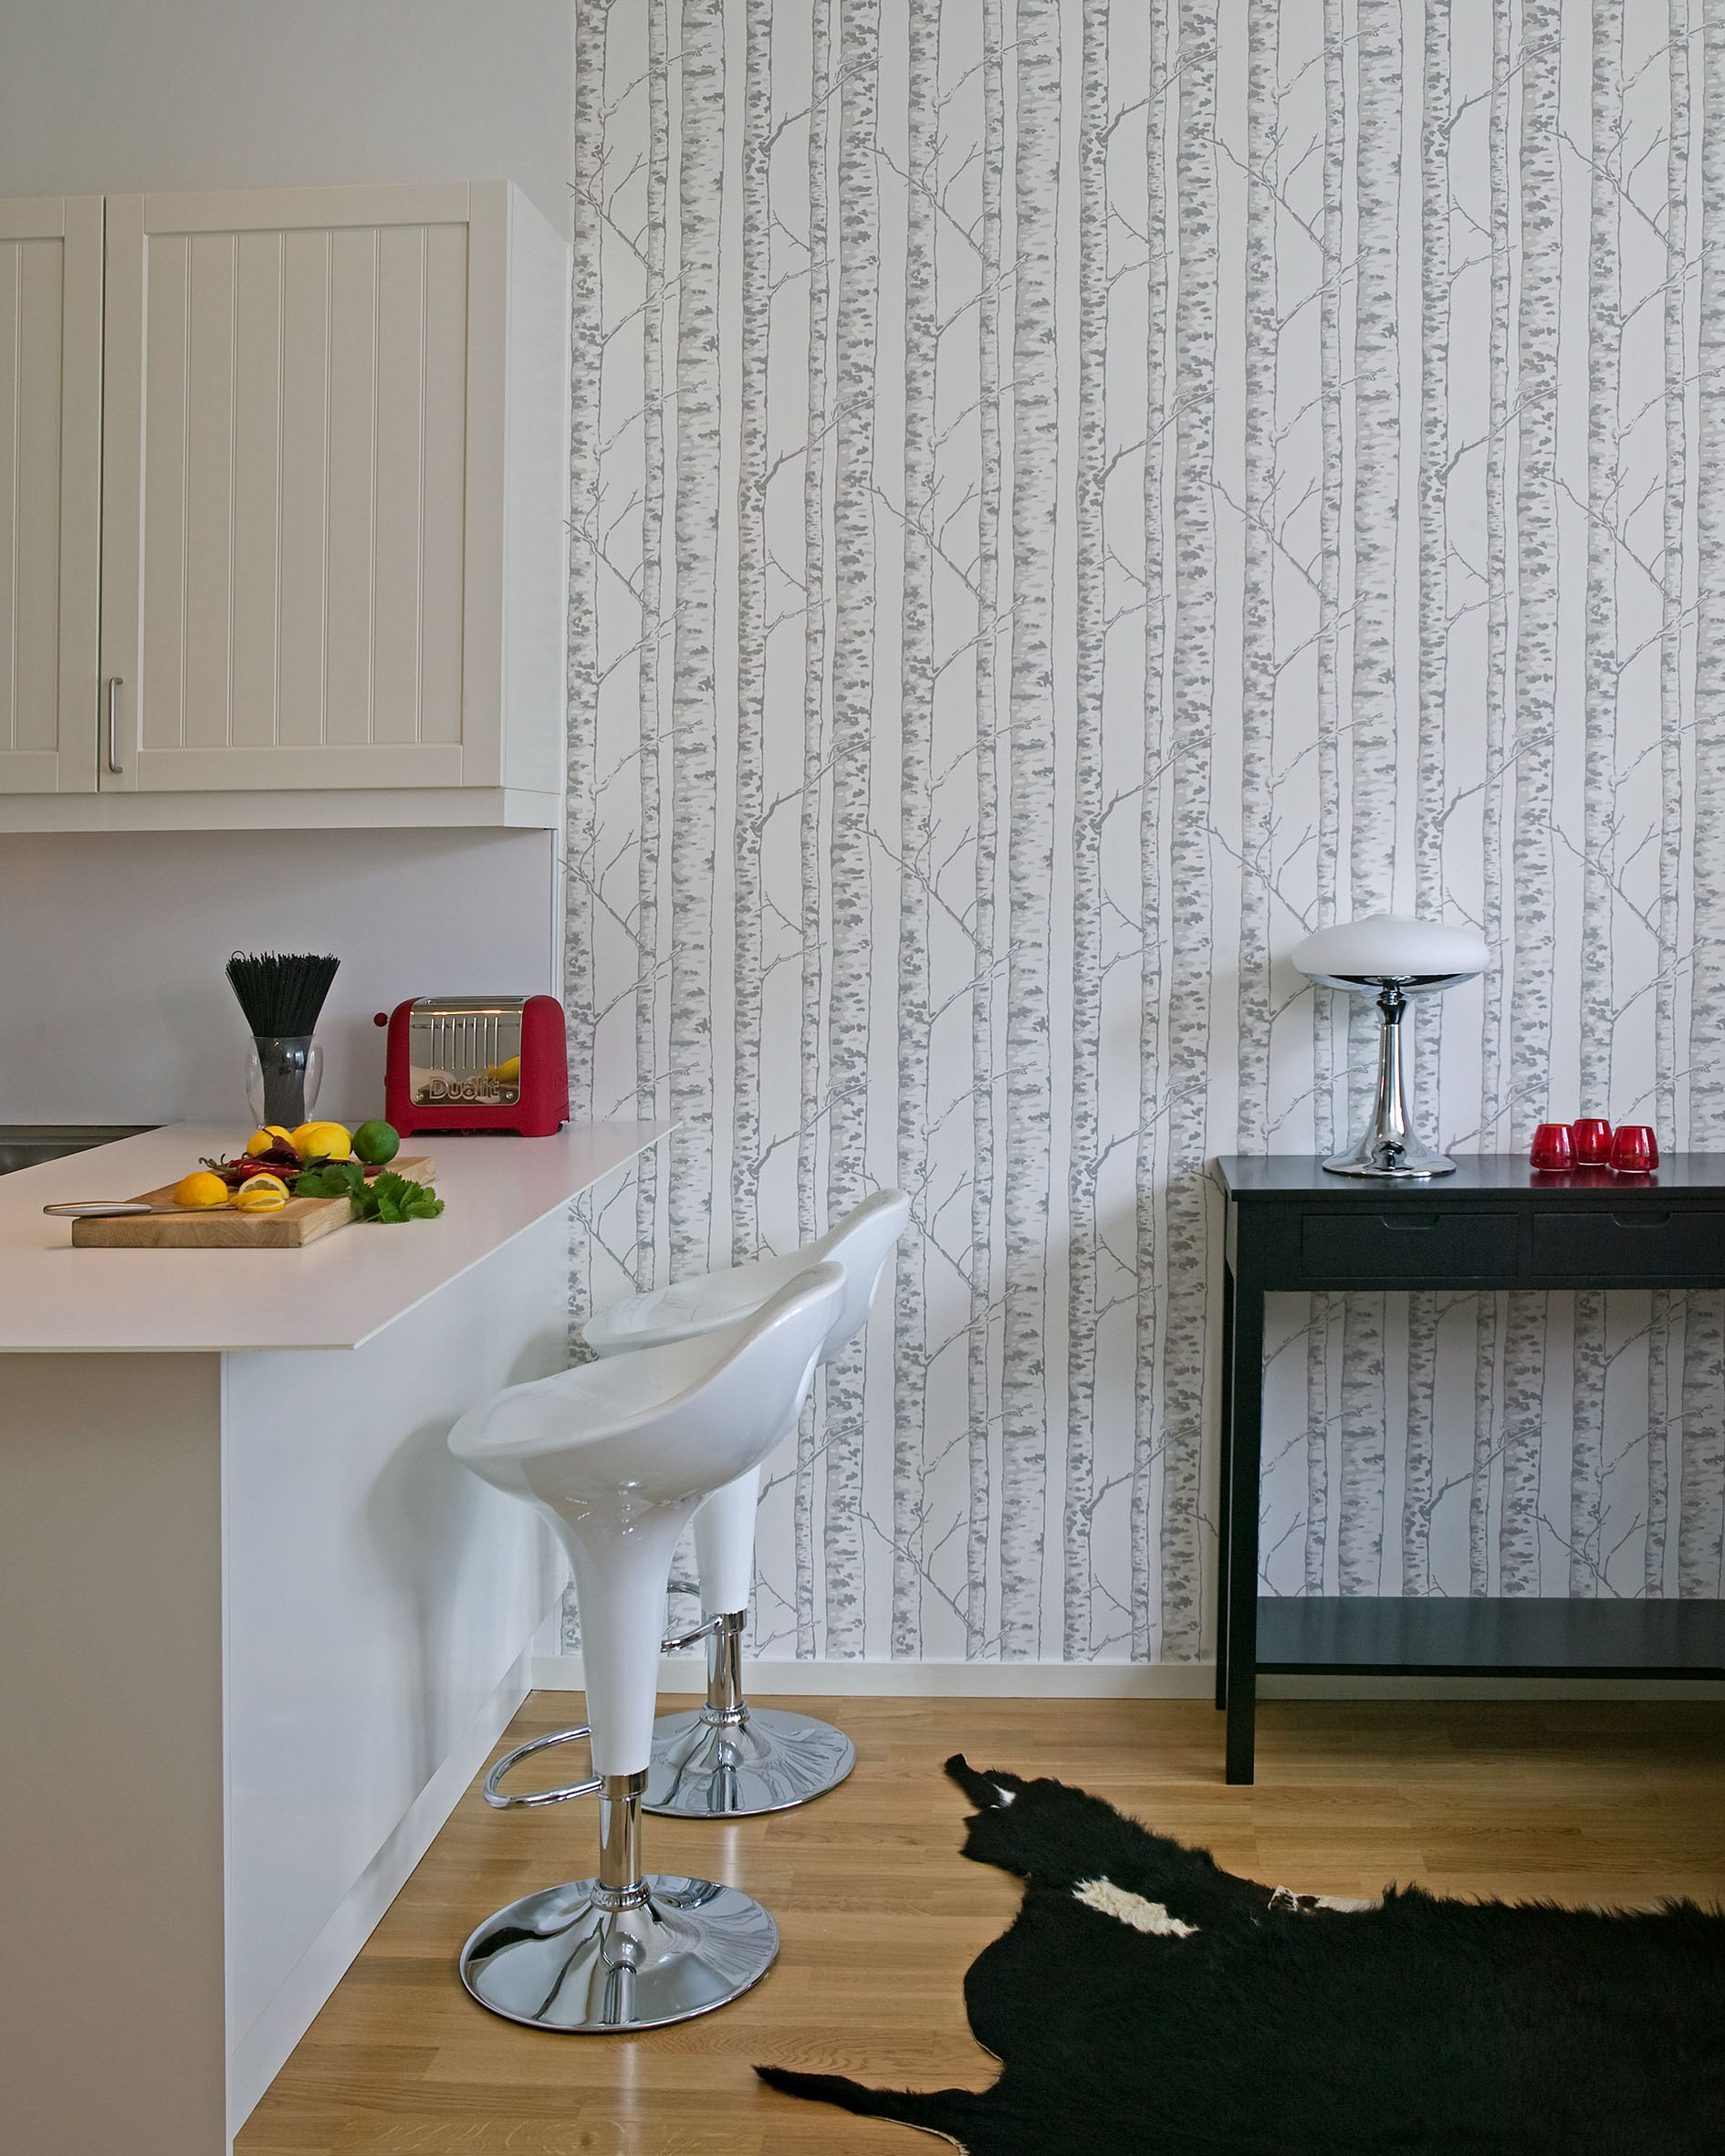 A-wonderful-all-over-birch-tree-design-with-silver-grey-bark-set-against-a-soft-off-white-background-wallpaper-wp423387